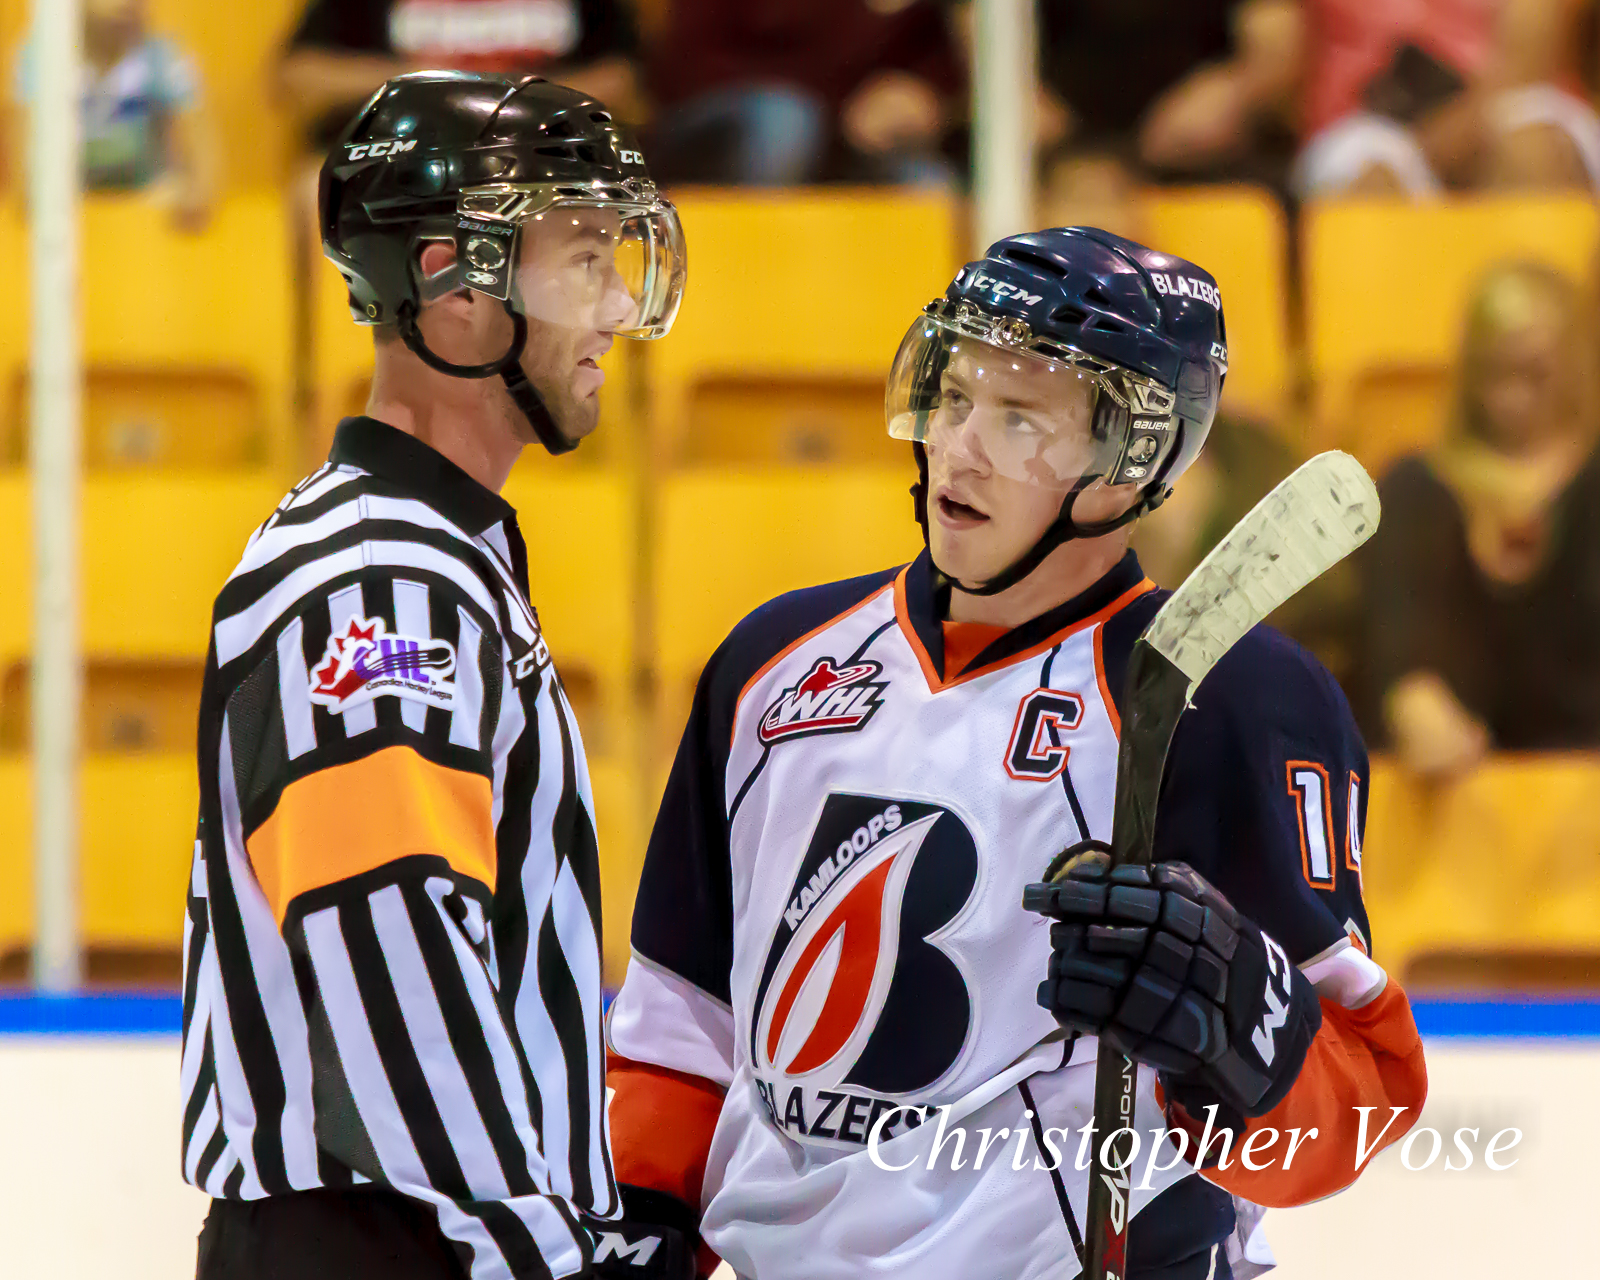 2014-09-07 Referee and Matt Needham.jpg